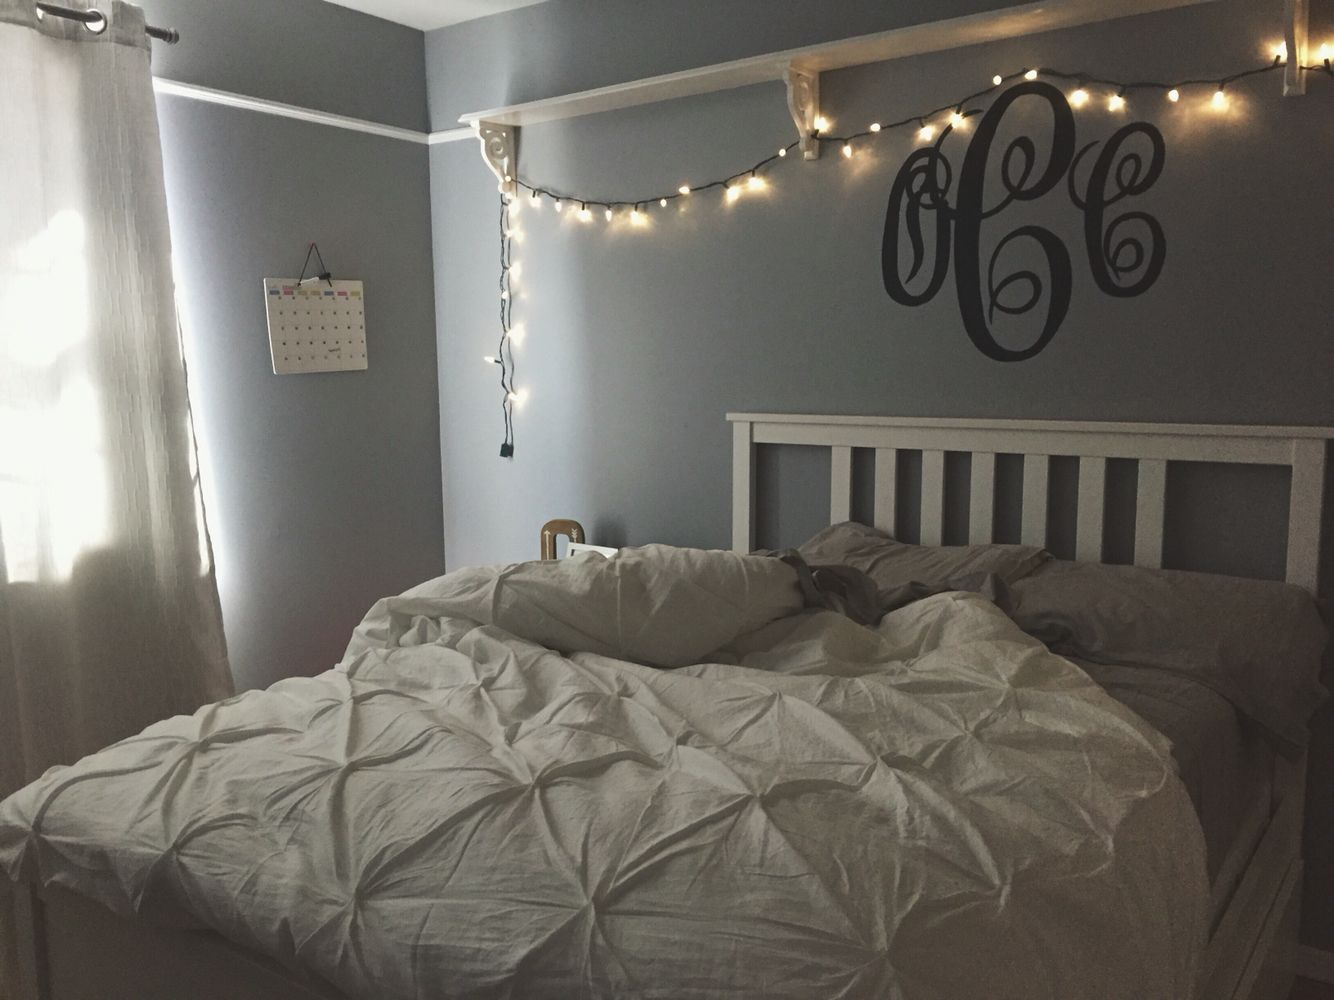 My room teenage bedroom fairy lights grey white bedroom for Room inspiration bedroom